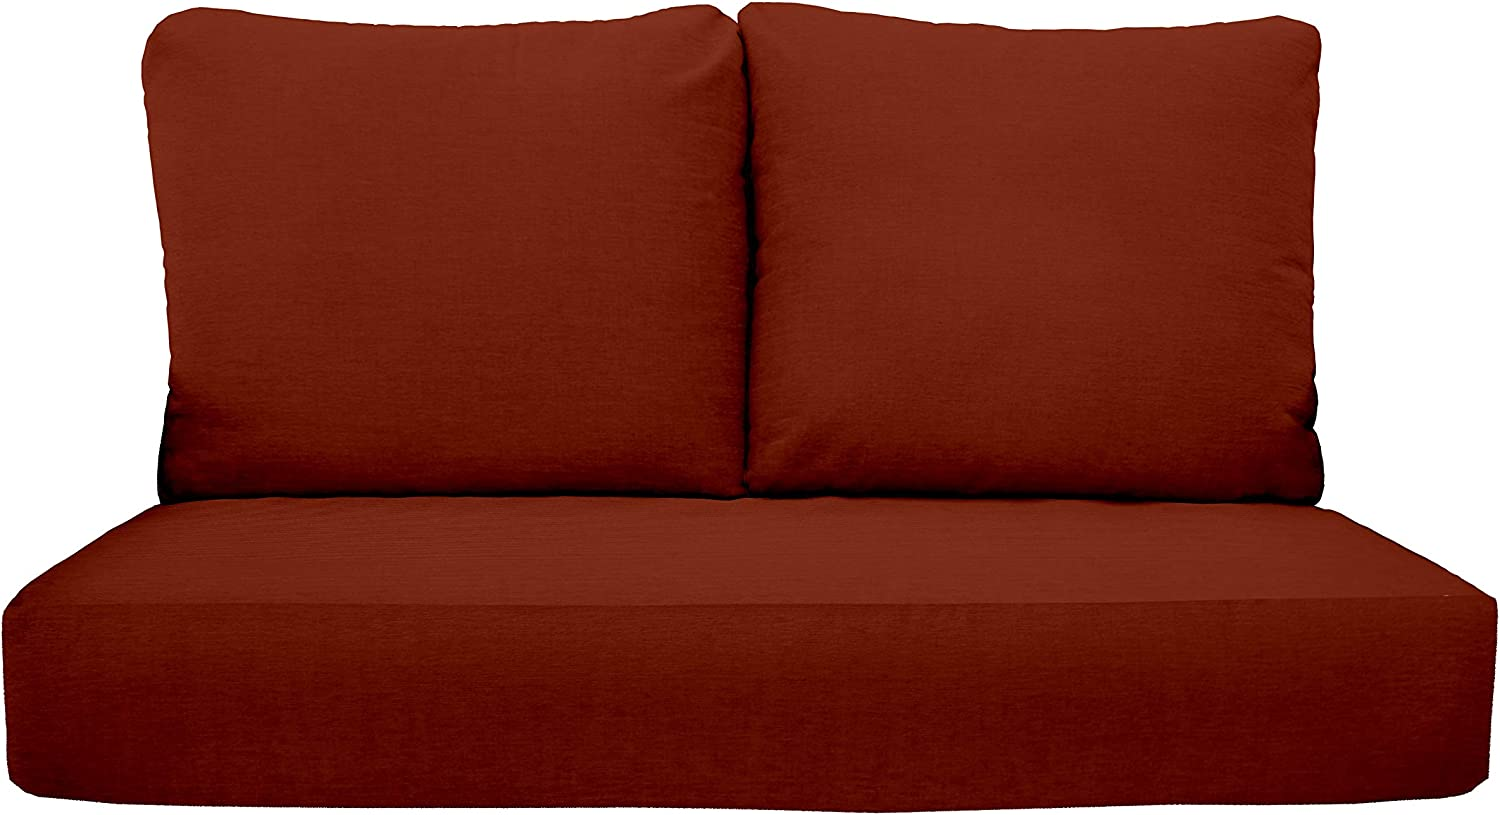 """RSH Décor Indoor Outdoor Sunbrella Deep Seating Loveseat Cushion Set, 1-46"""" x 26"""" x 5"""" Seat and 2-25"""" x 21"""" Backs, Choose Color (Canvas Terracotta)"""